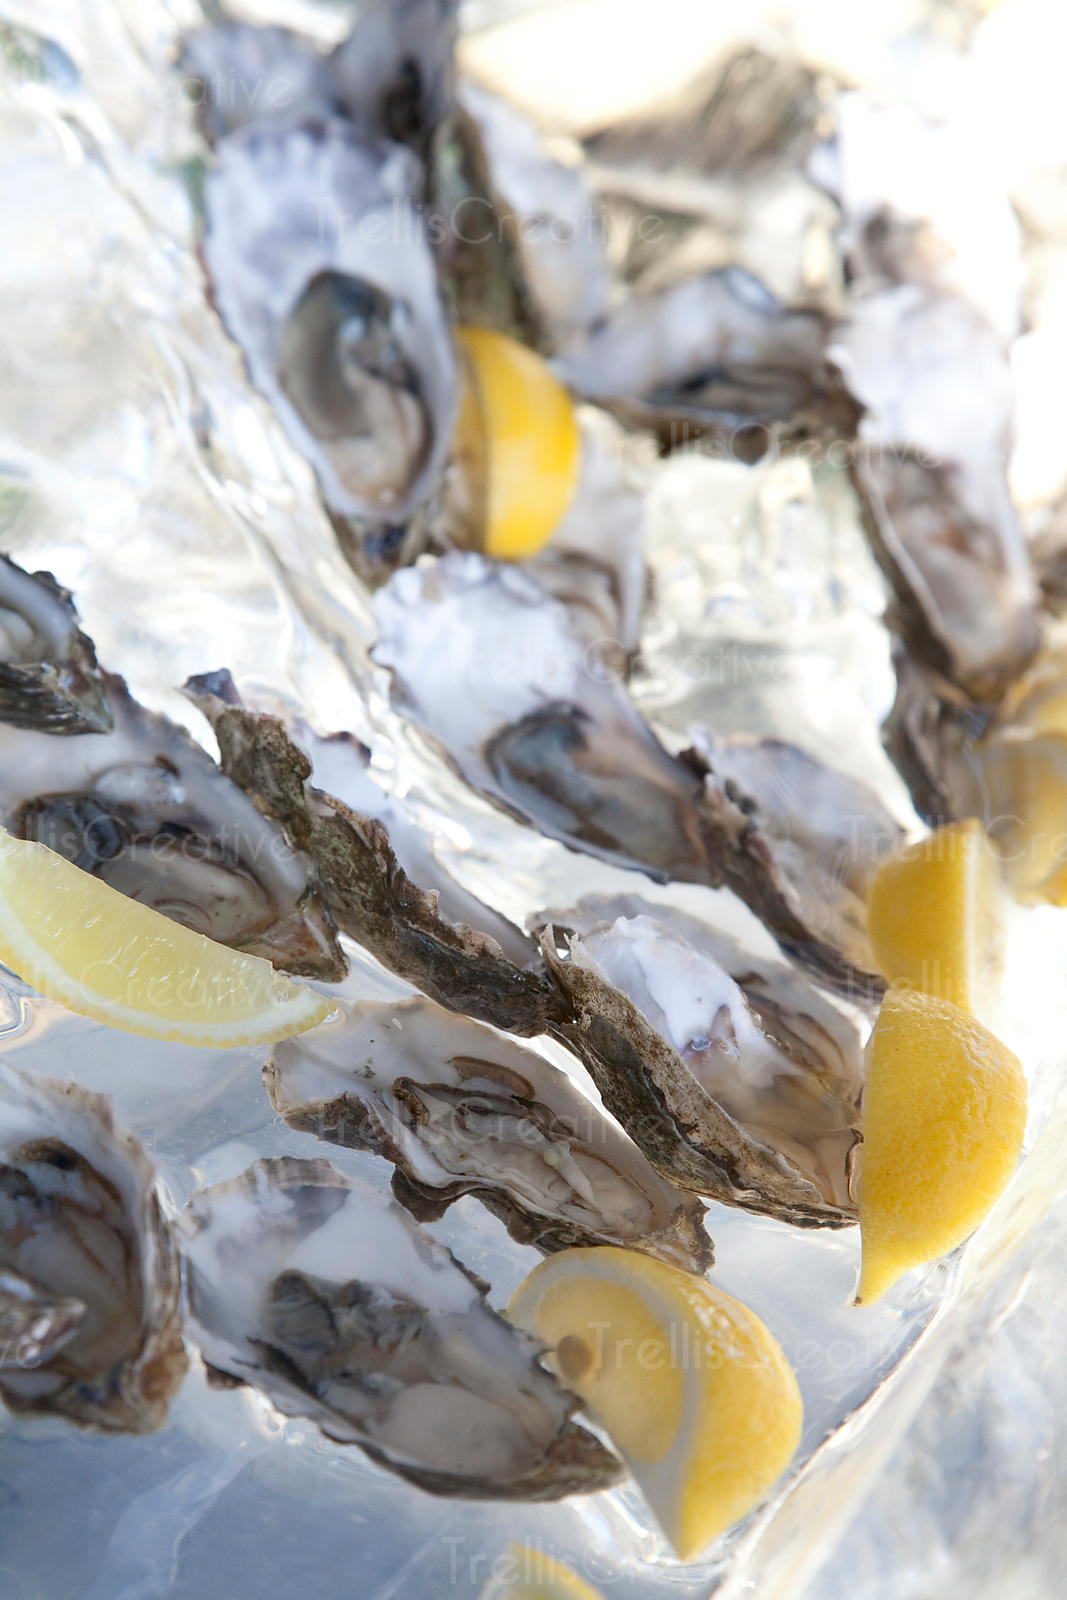 Shucked oysters on a bed of ice